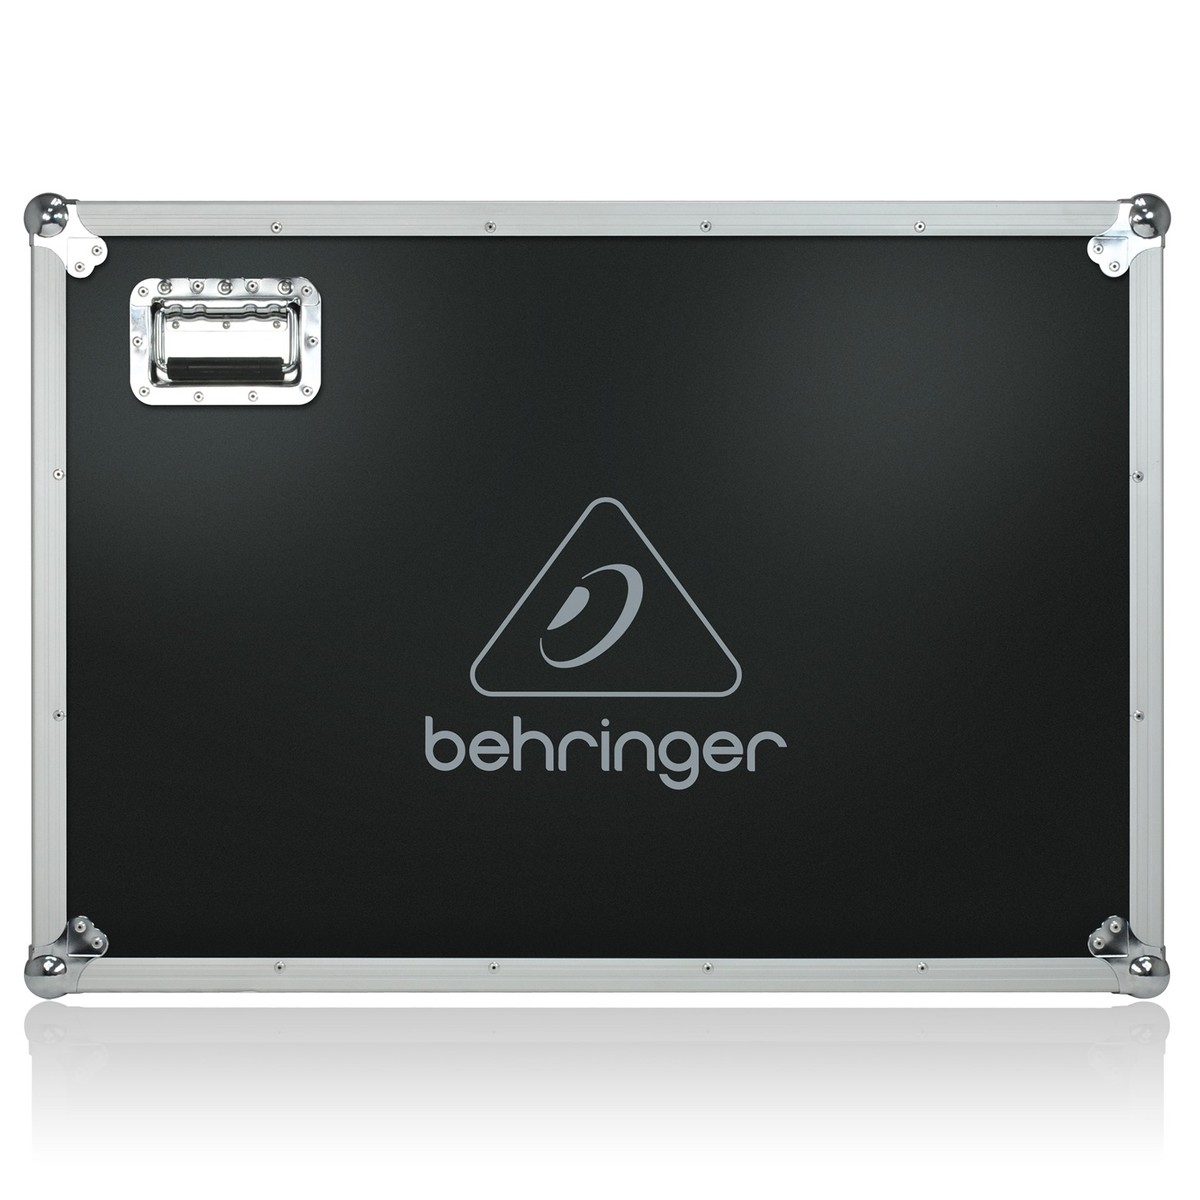 behringer x32 tp digital mixing console with flight case at. Black Bedroom Furniture Sets. Home Design Ideas